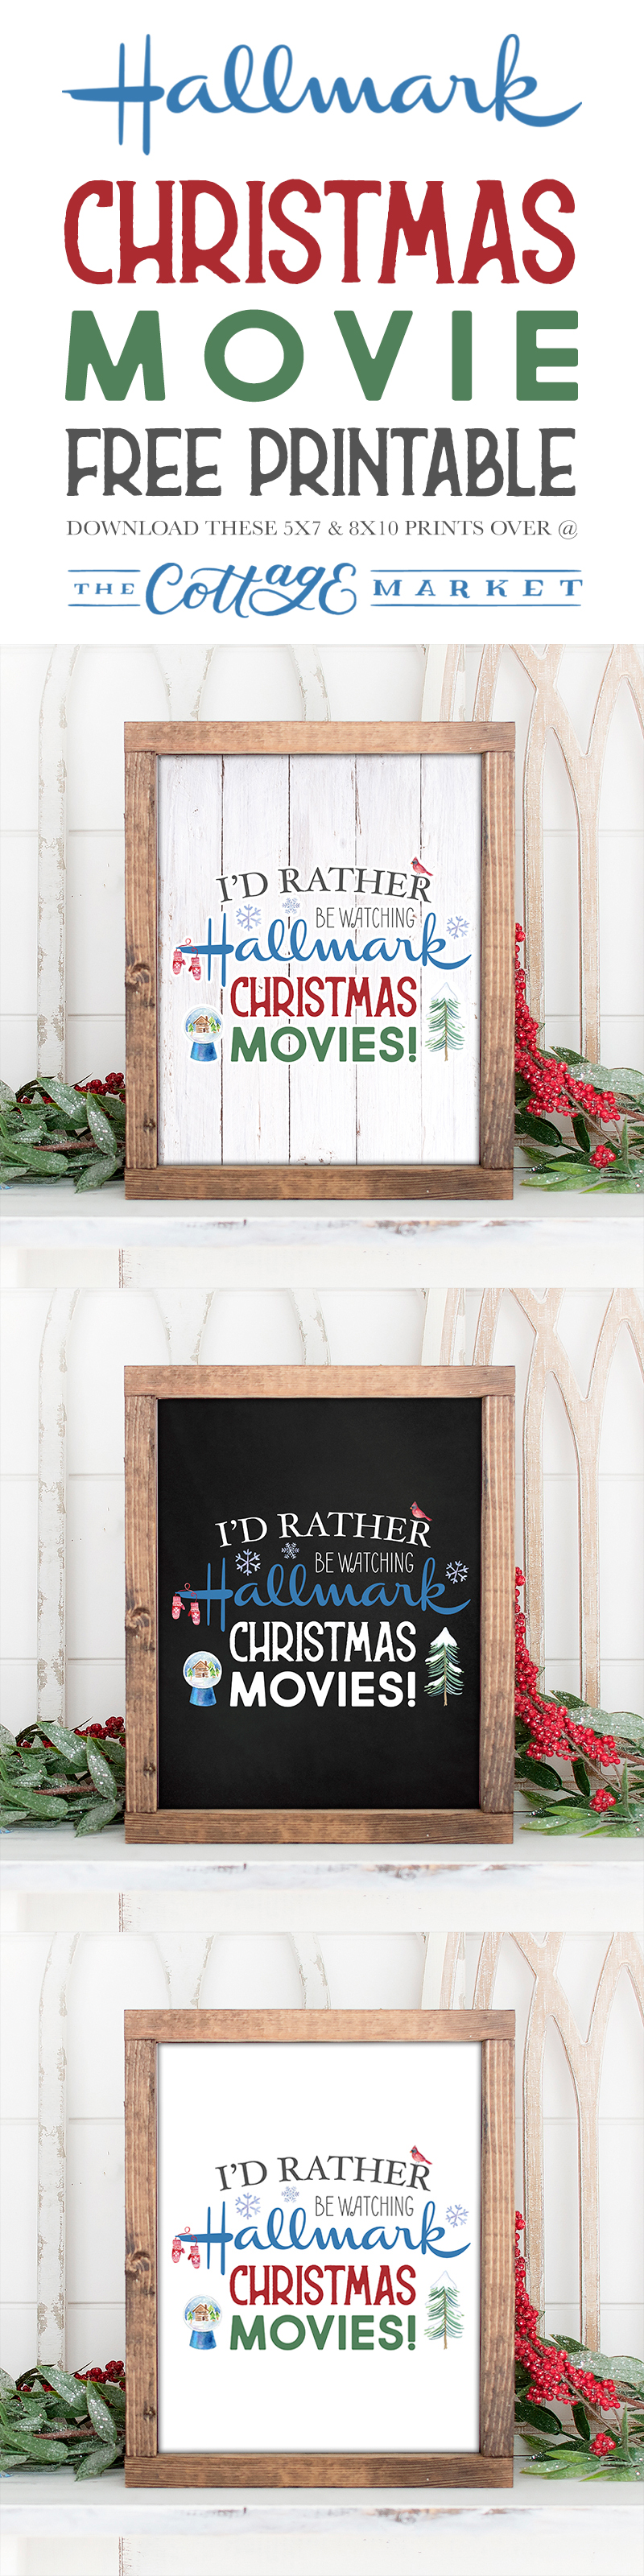 This Hallmark Christmas Movie Free Printable comes in 3 different styles and 2 different sizes, we are sure that one will be perfect for you!  Share one with a friend!!!